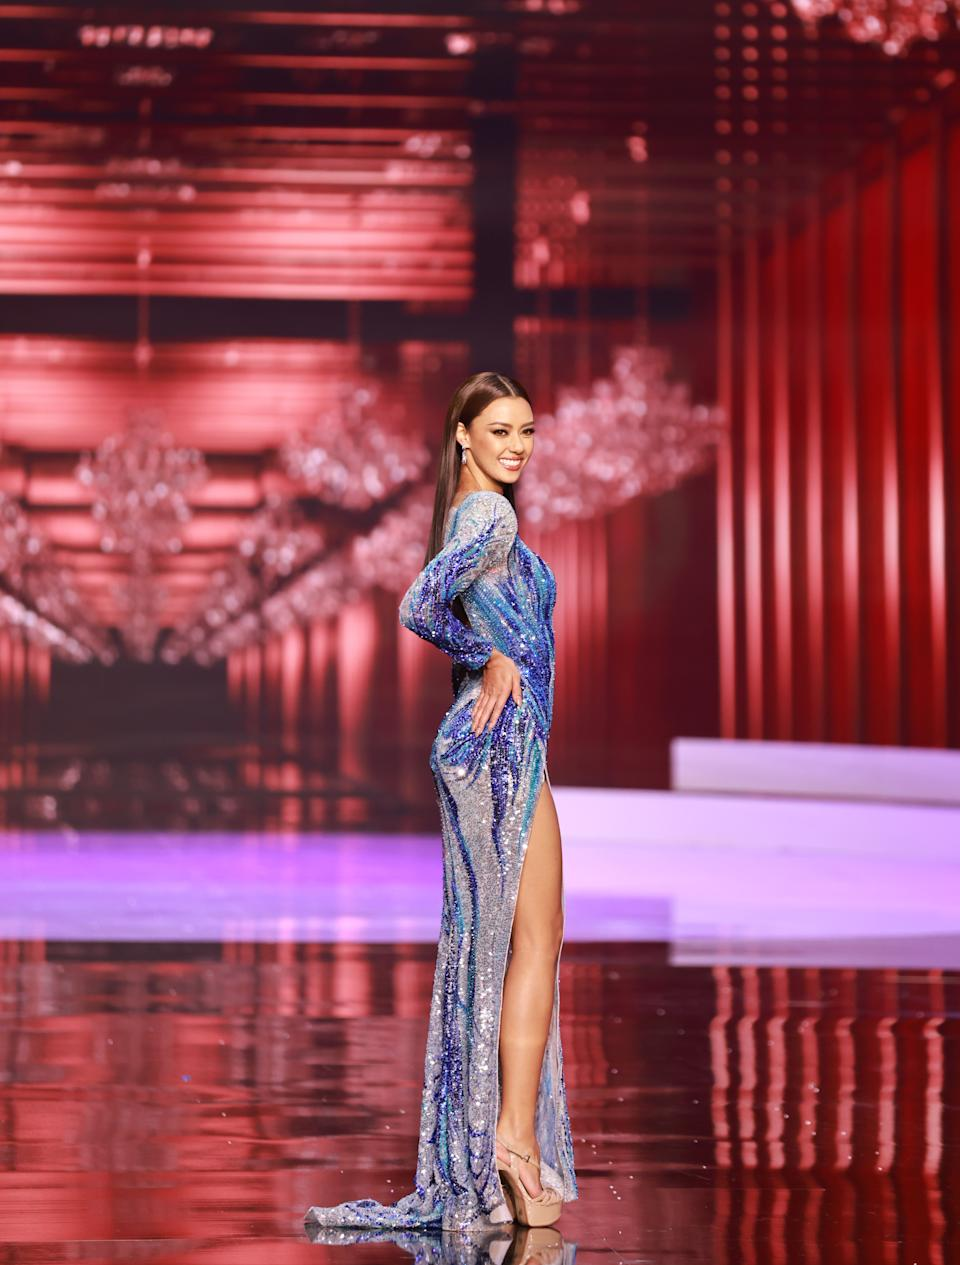 <p>Amanda Obdam, Miss Universe Thailand 2020 competes on stage as a Top 10 finalist in an evening gown of her choice during the 69th Miss Universe Competition on May 16, 2021 at the Seminole Hard Rock Hotel & Casino in Hollywood, Florida airing LIVE on FYI and Telemundo. Contestants from around the globe have spent the last few weeks touring, filming, rehearsing and preparing to compete for the Miss Universe crown. (PHOTO: Miss Universe)</p>